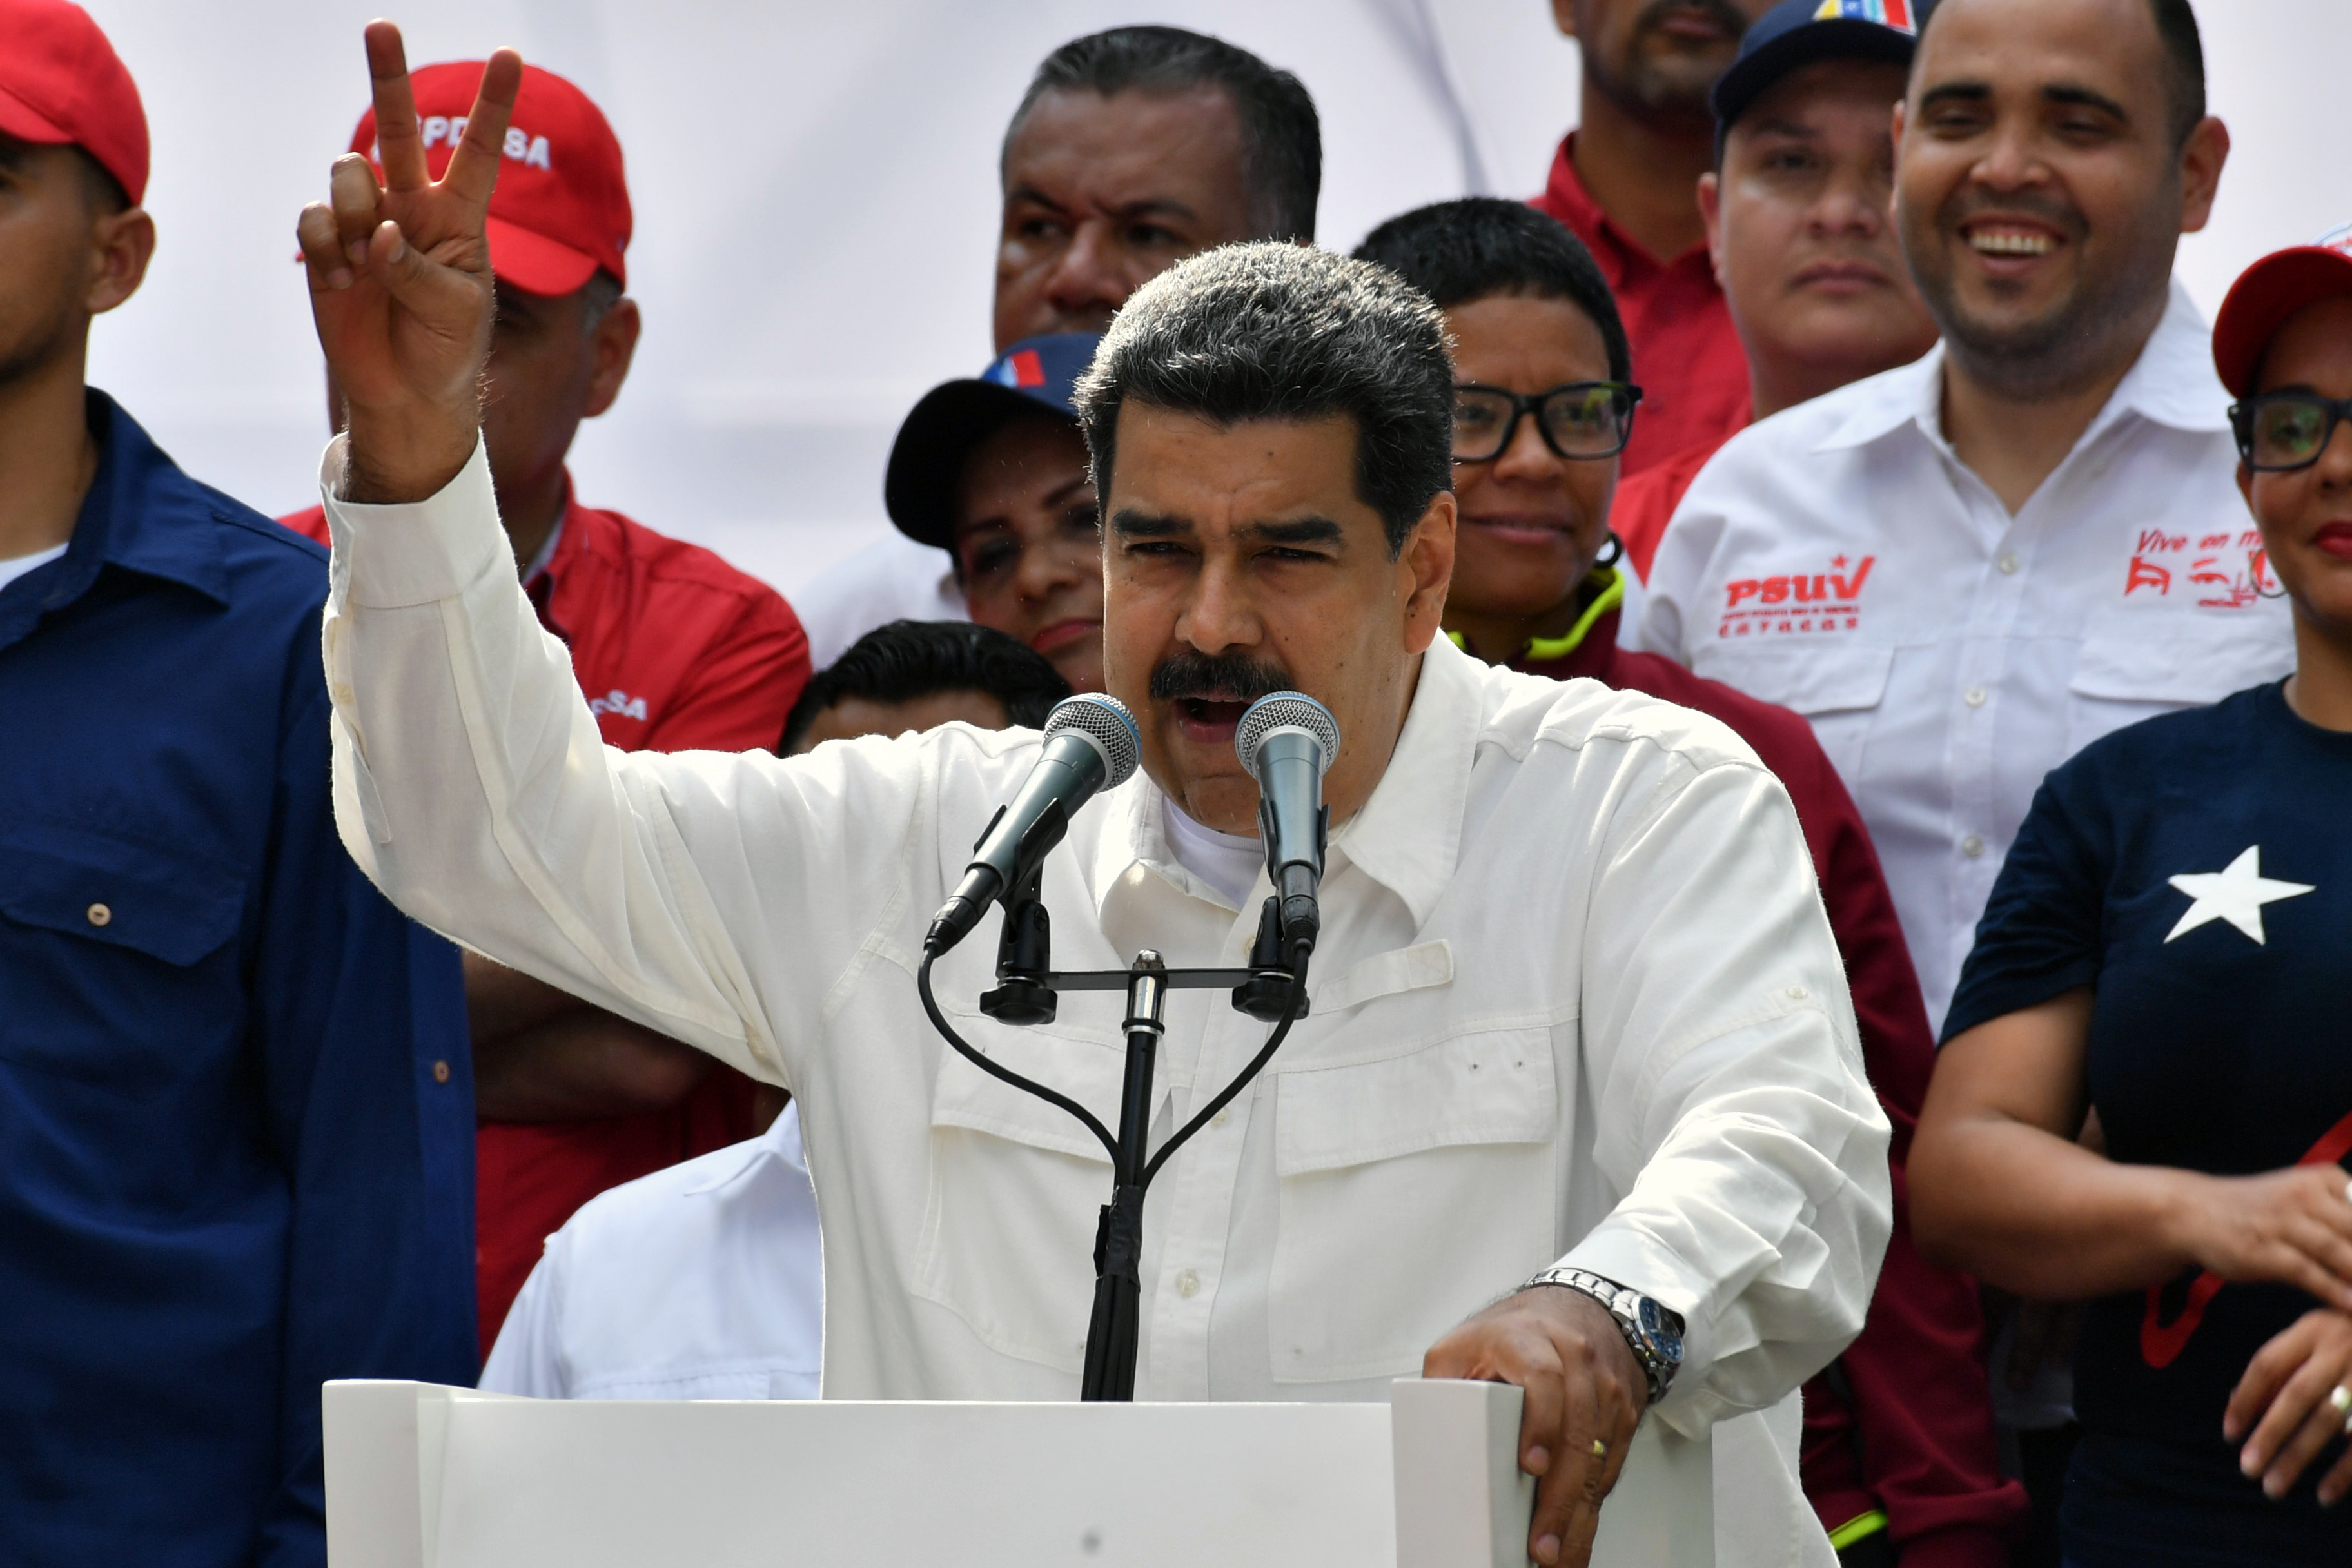 Human Rights Groups and Opposition Politicians Appalled as Venezuela Joins UN Human Rights Council